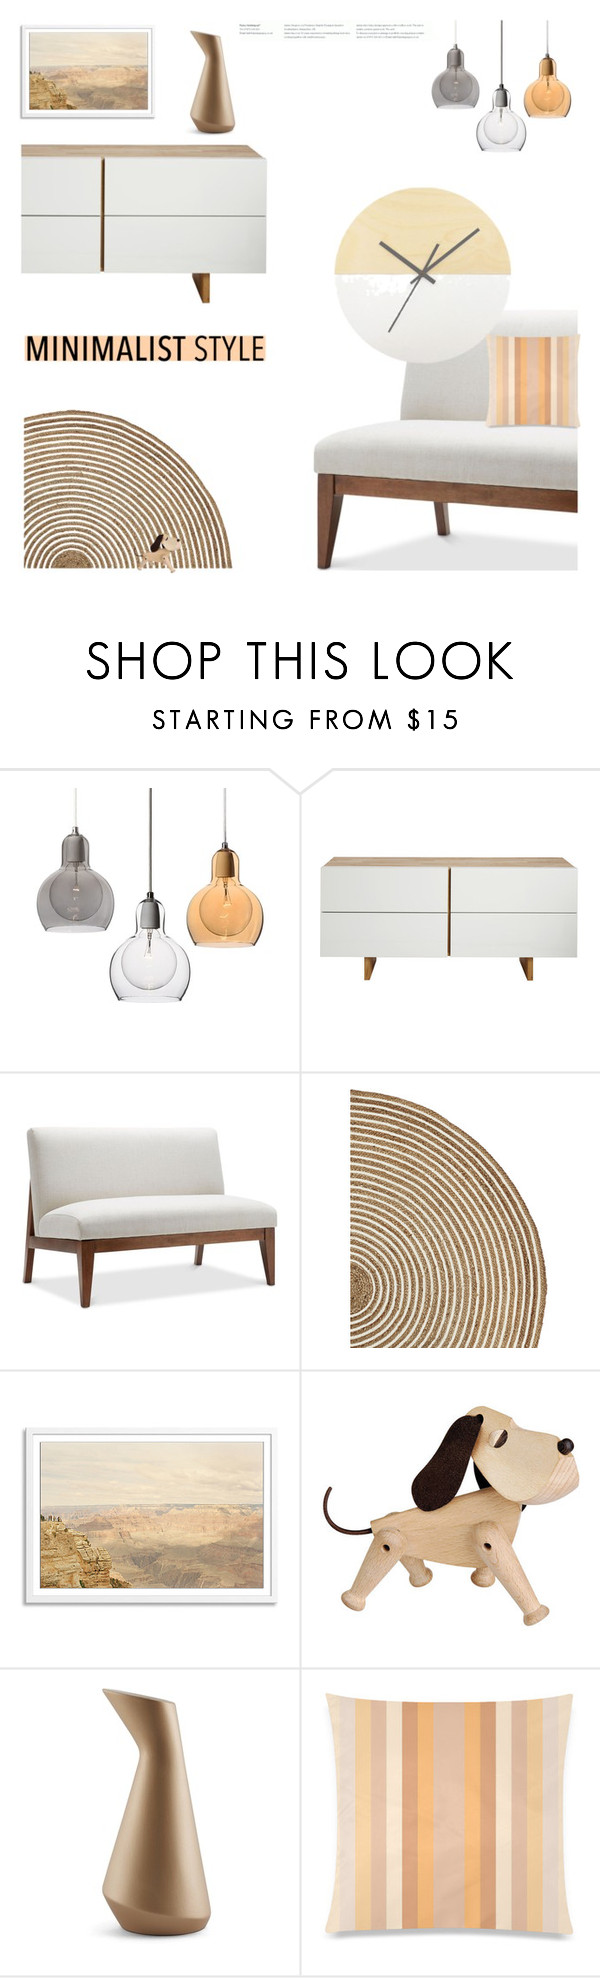 """Minimalist Makeover"" by slavicabojanovic ❤ liked on Polyvore featuring interior, interiors, interior design, home, home decor, interior decorating, MASH Studios, Serena & Lily, Incipit and Minimaliststyle"